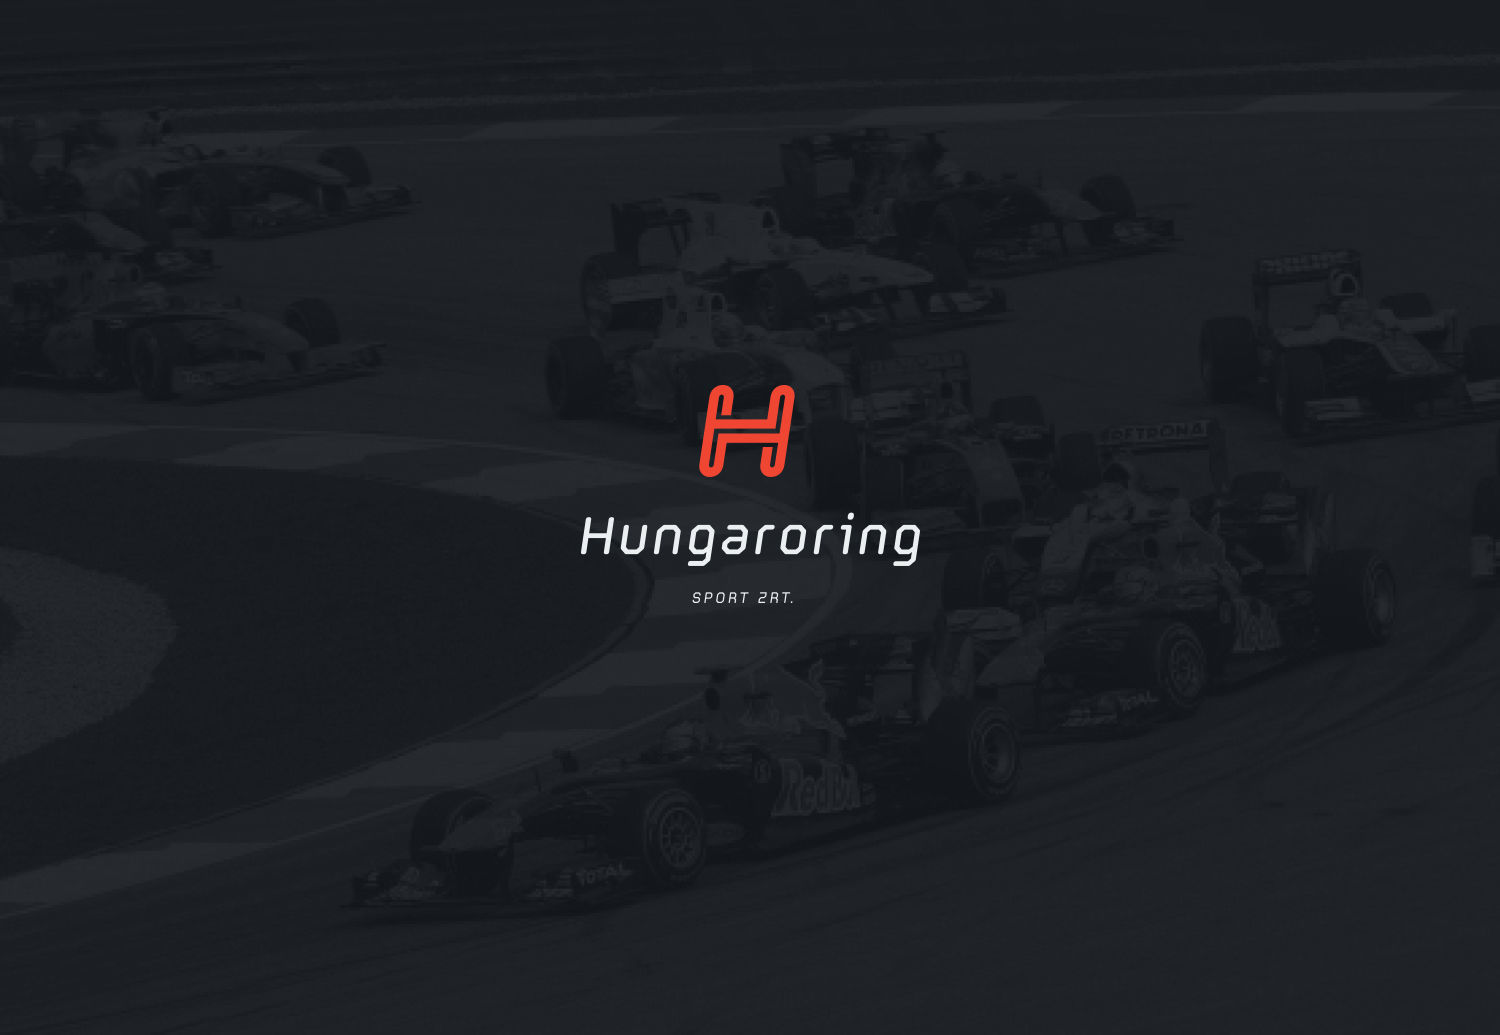 Hungaroring - 1 by Szakos